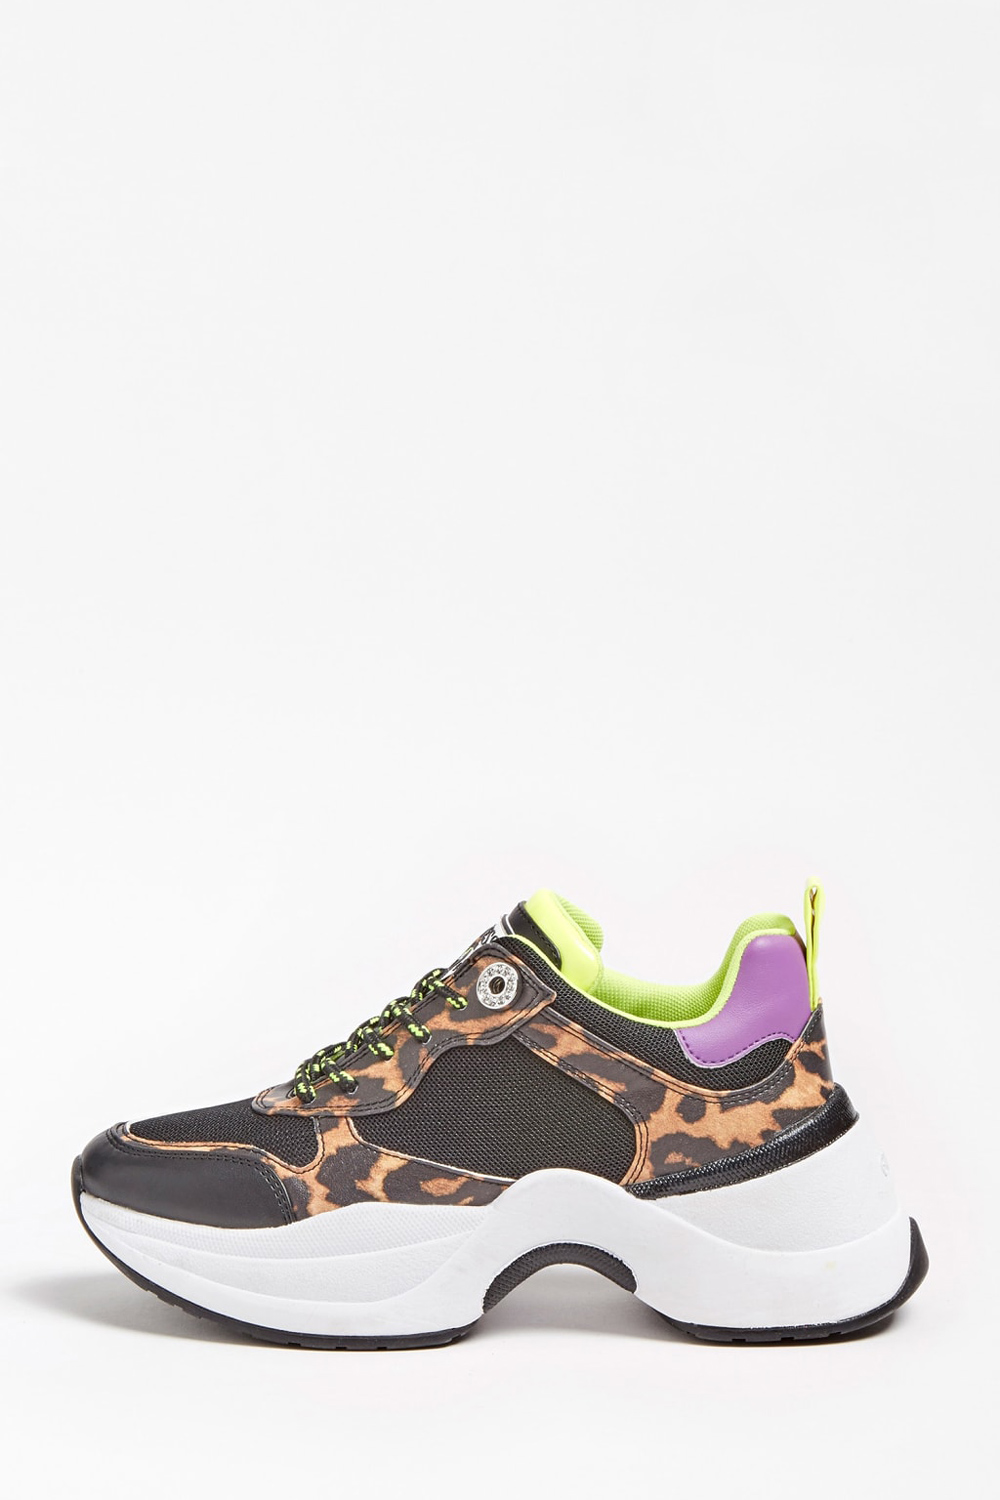 Guess sneakers Juless Faux Leather